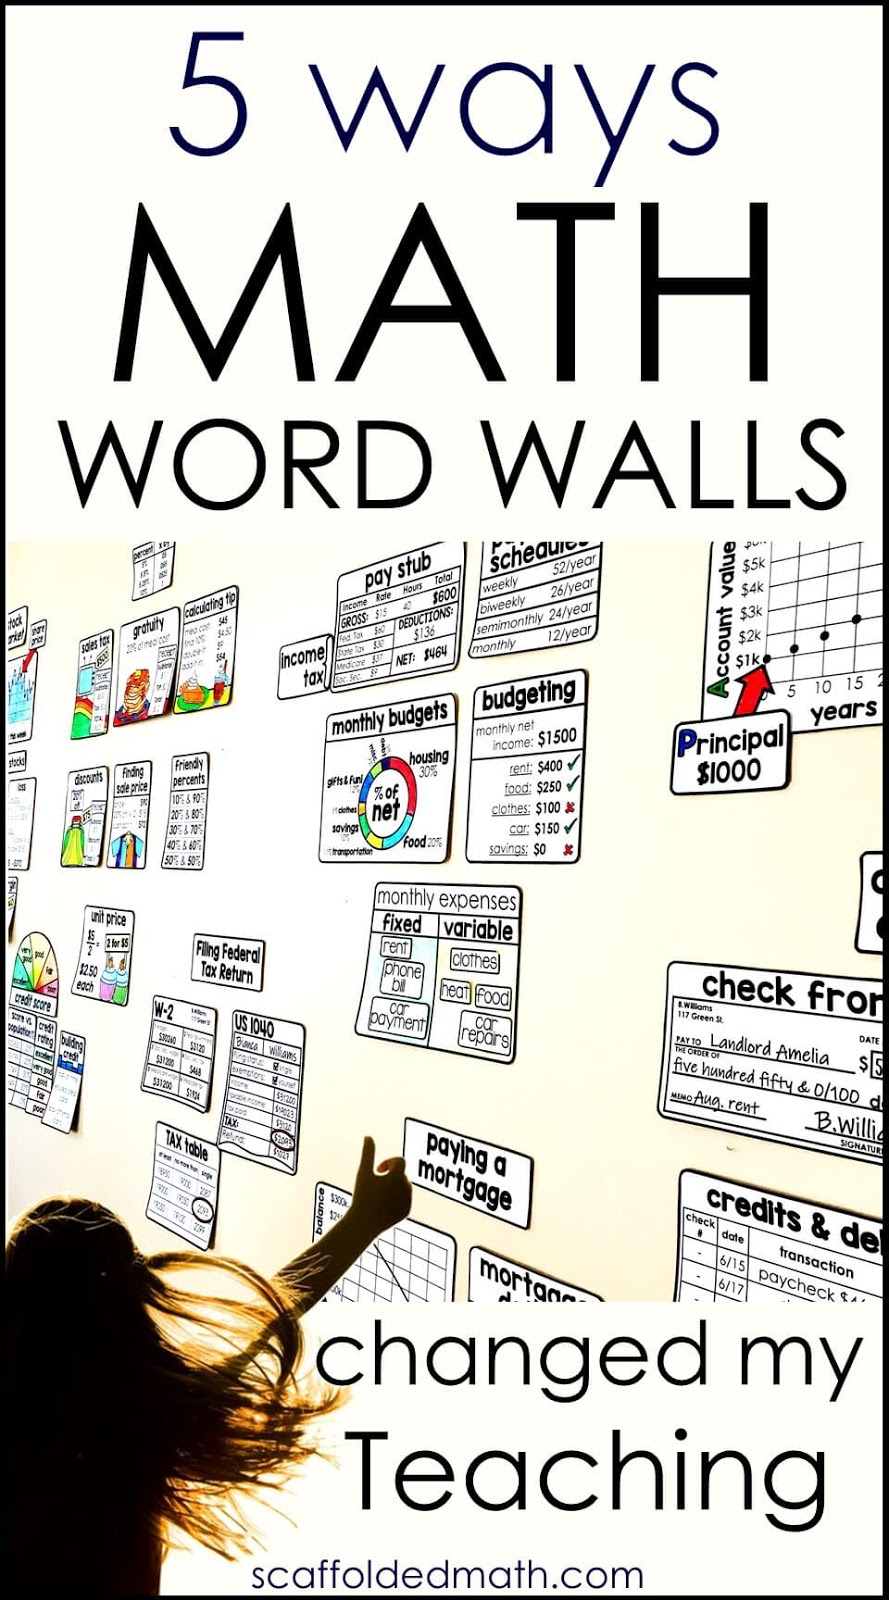 Scaffolded Math and Science: 5 Ways Math Word Walls Have Changed My